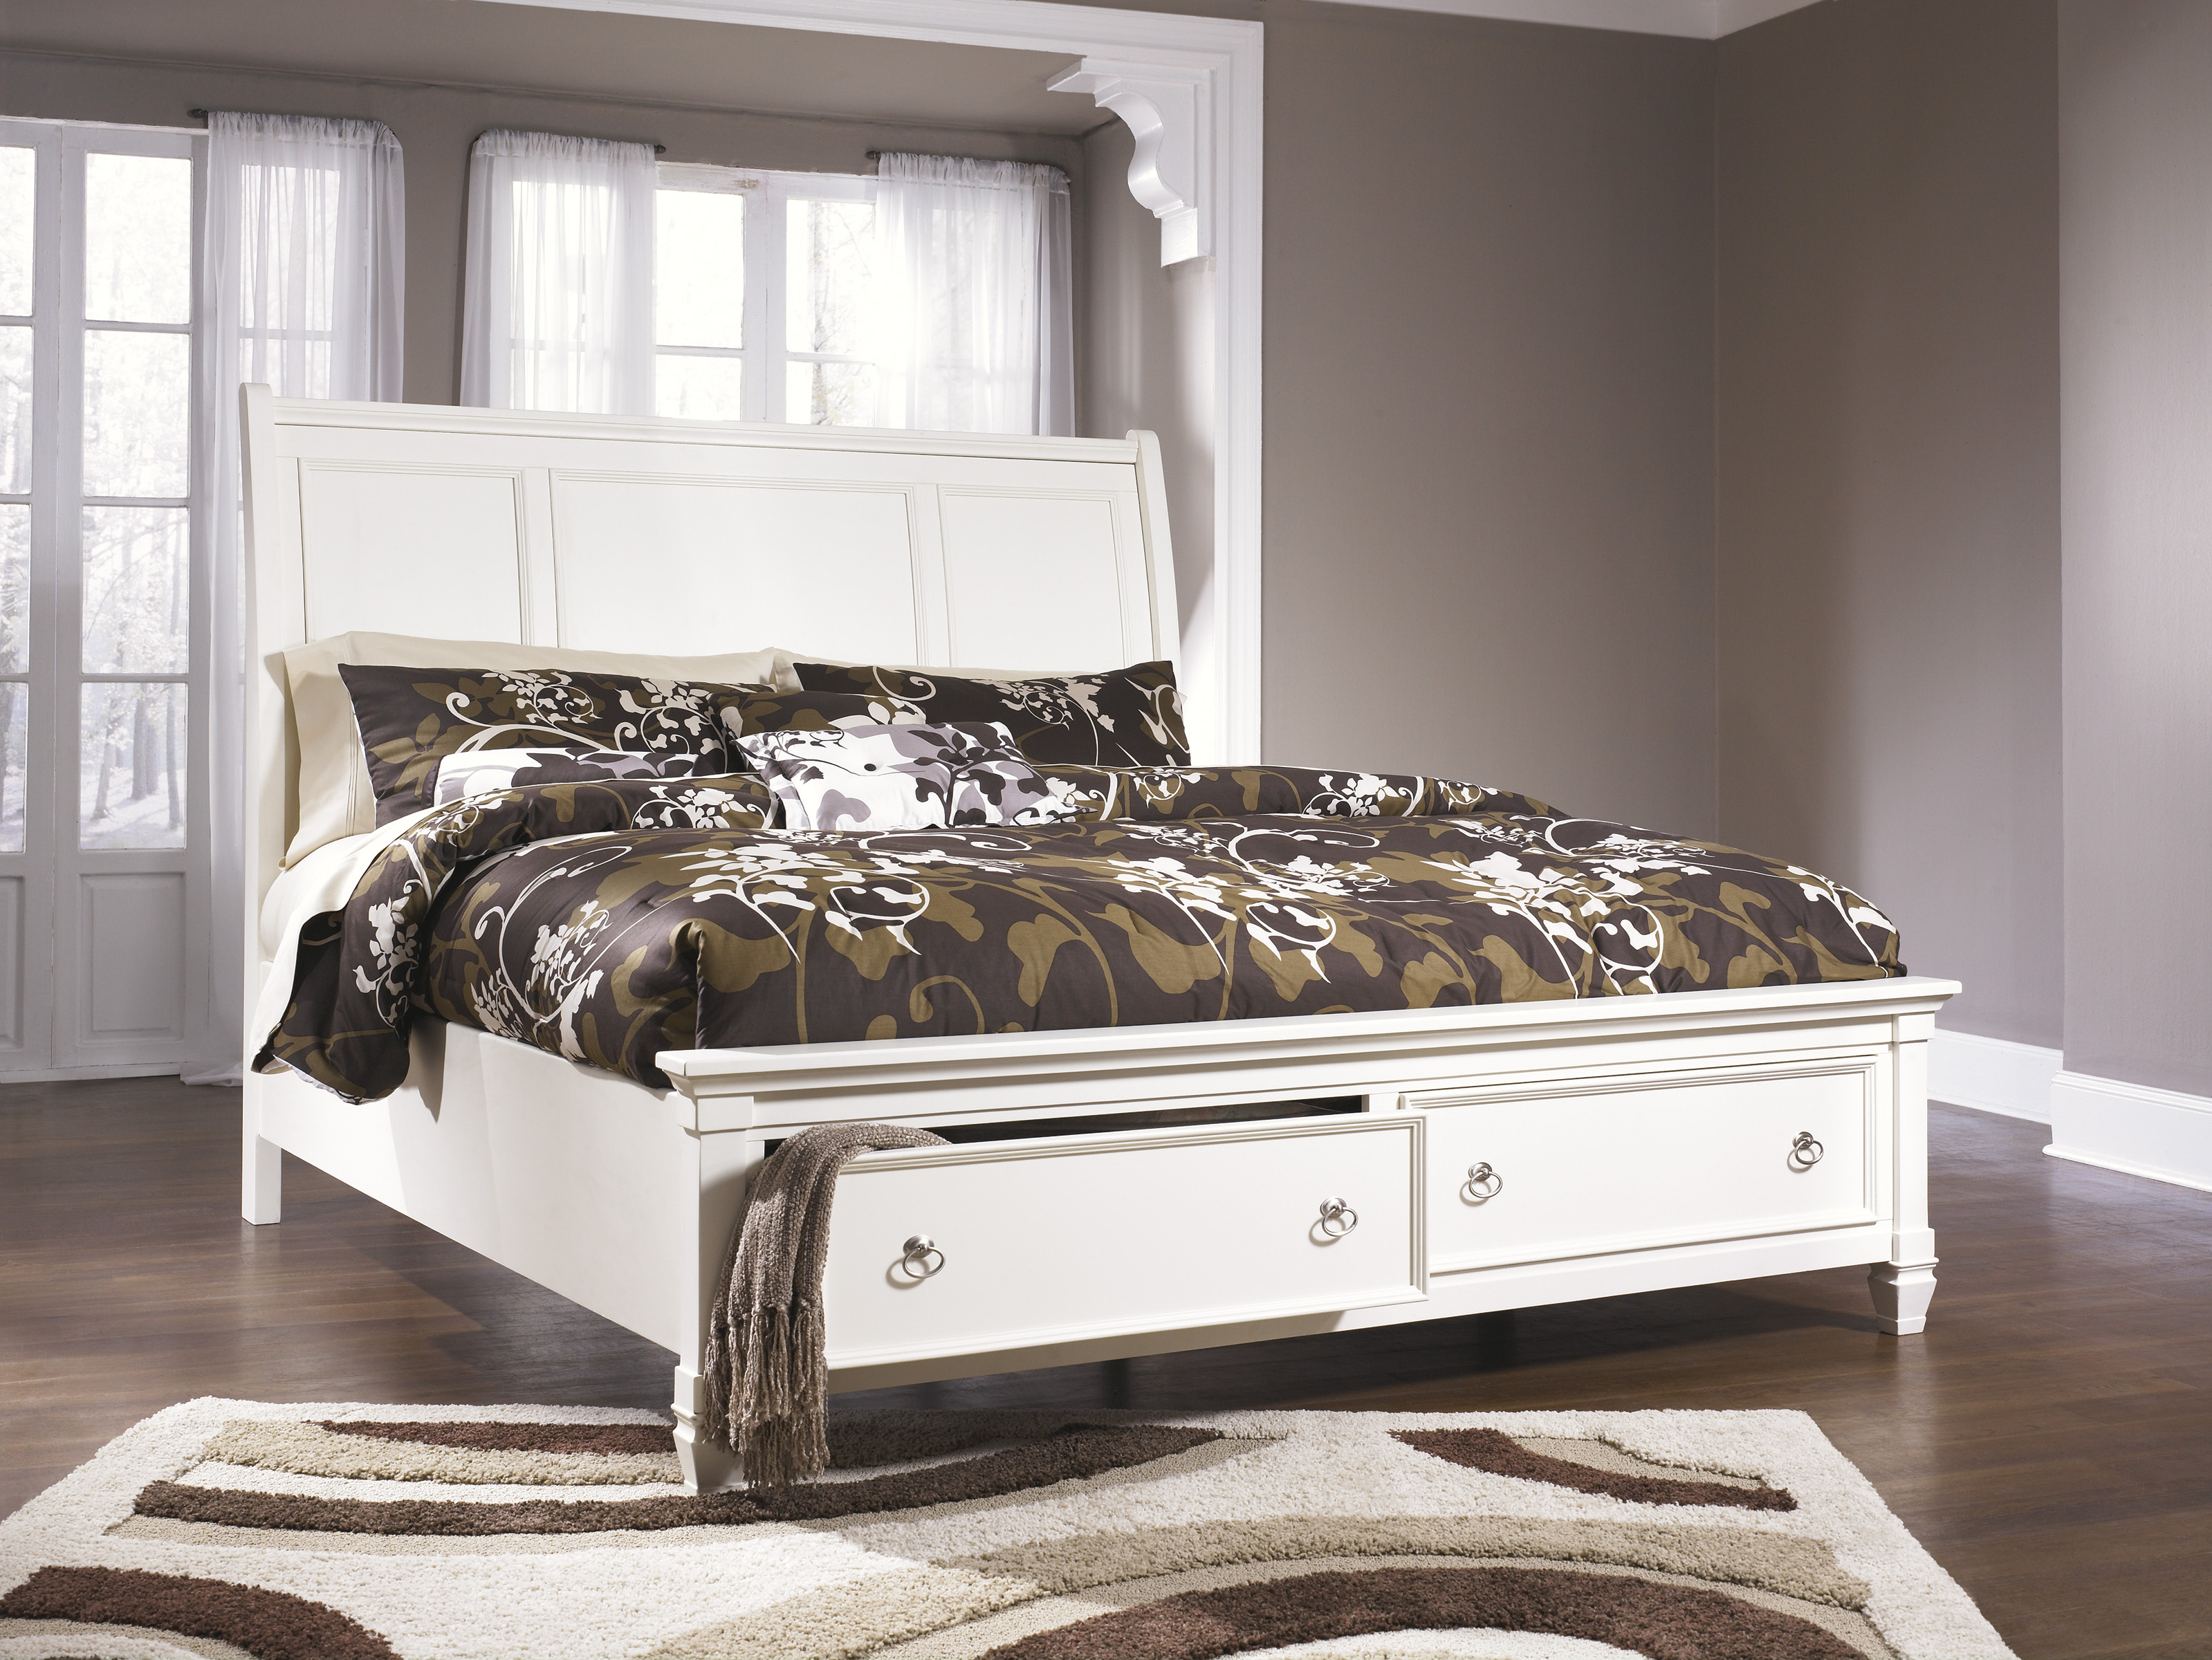 Ashley Furniture Prentice King Sleigh Storage Bed in White | Local ...